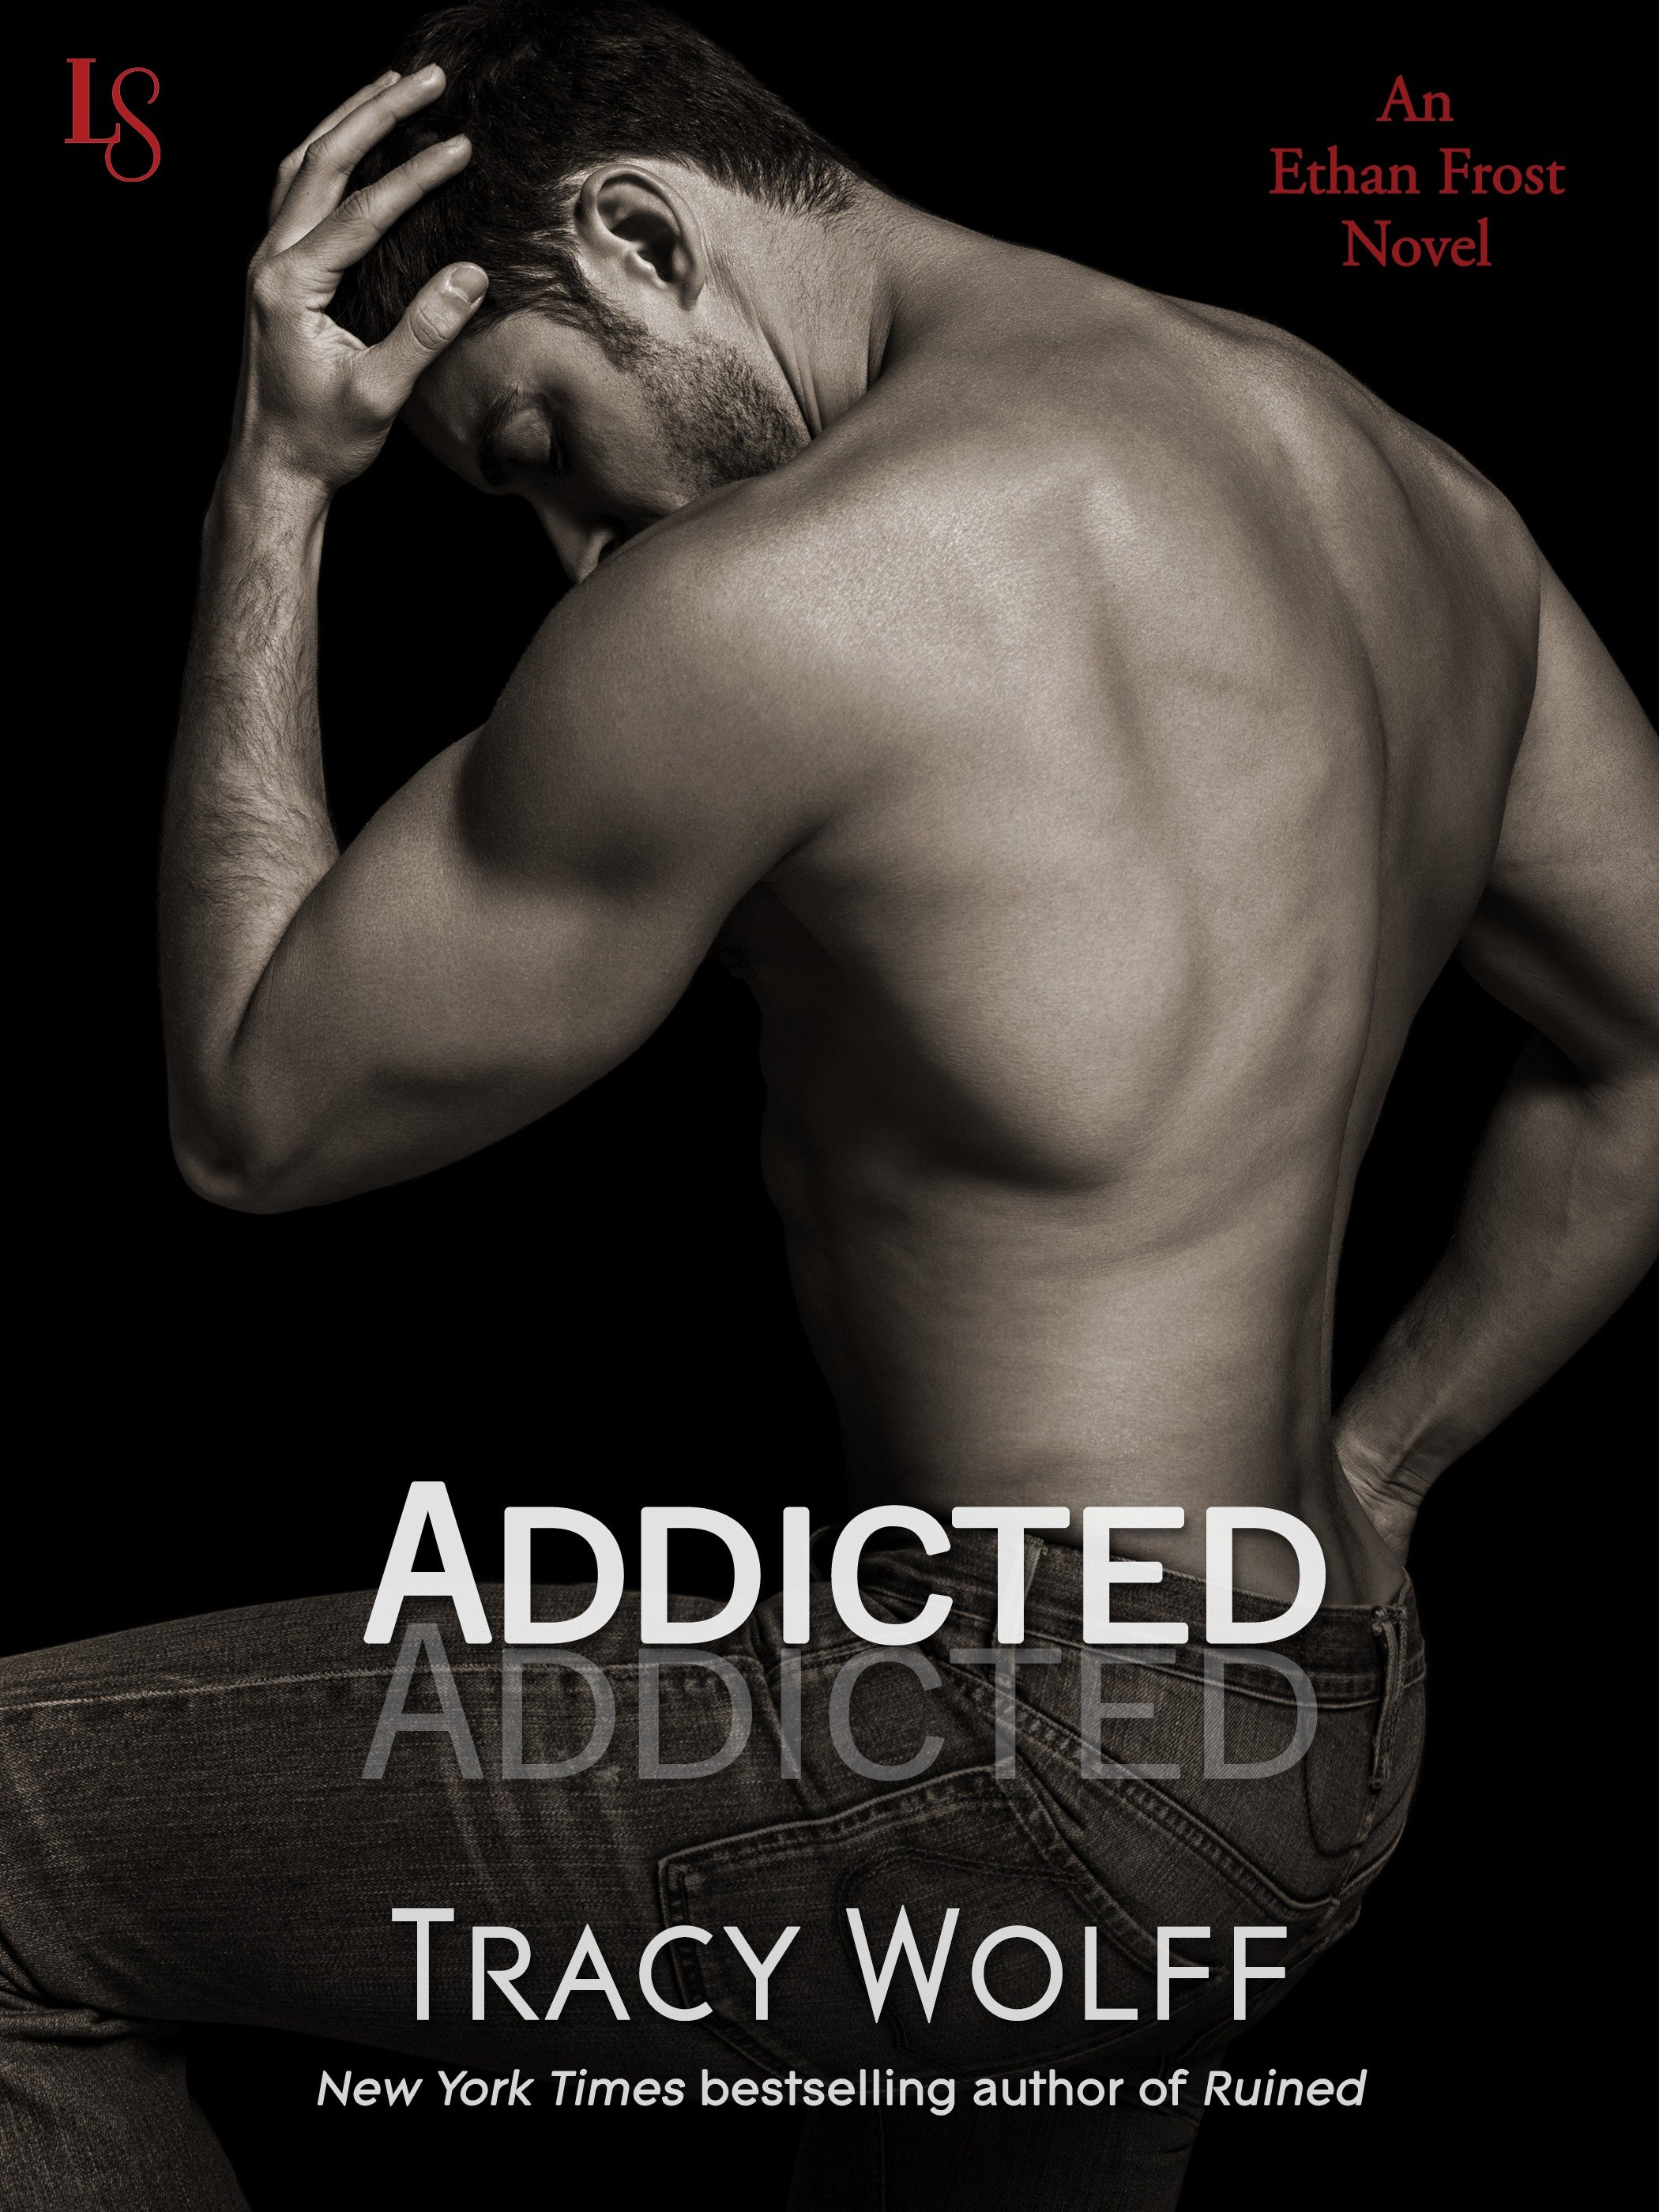 Addicted an Ethan Frost novel cover image